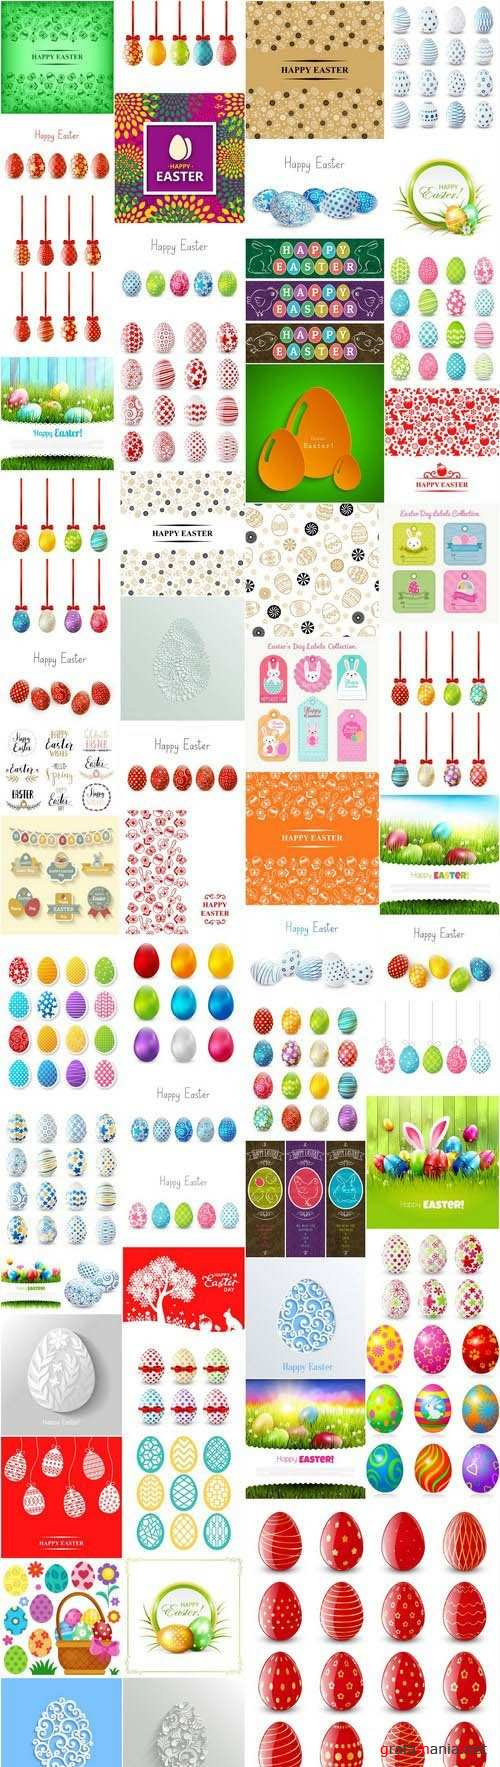 Happy Easter Easter Eggs Collection #2 - 55 Vector